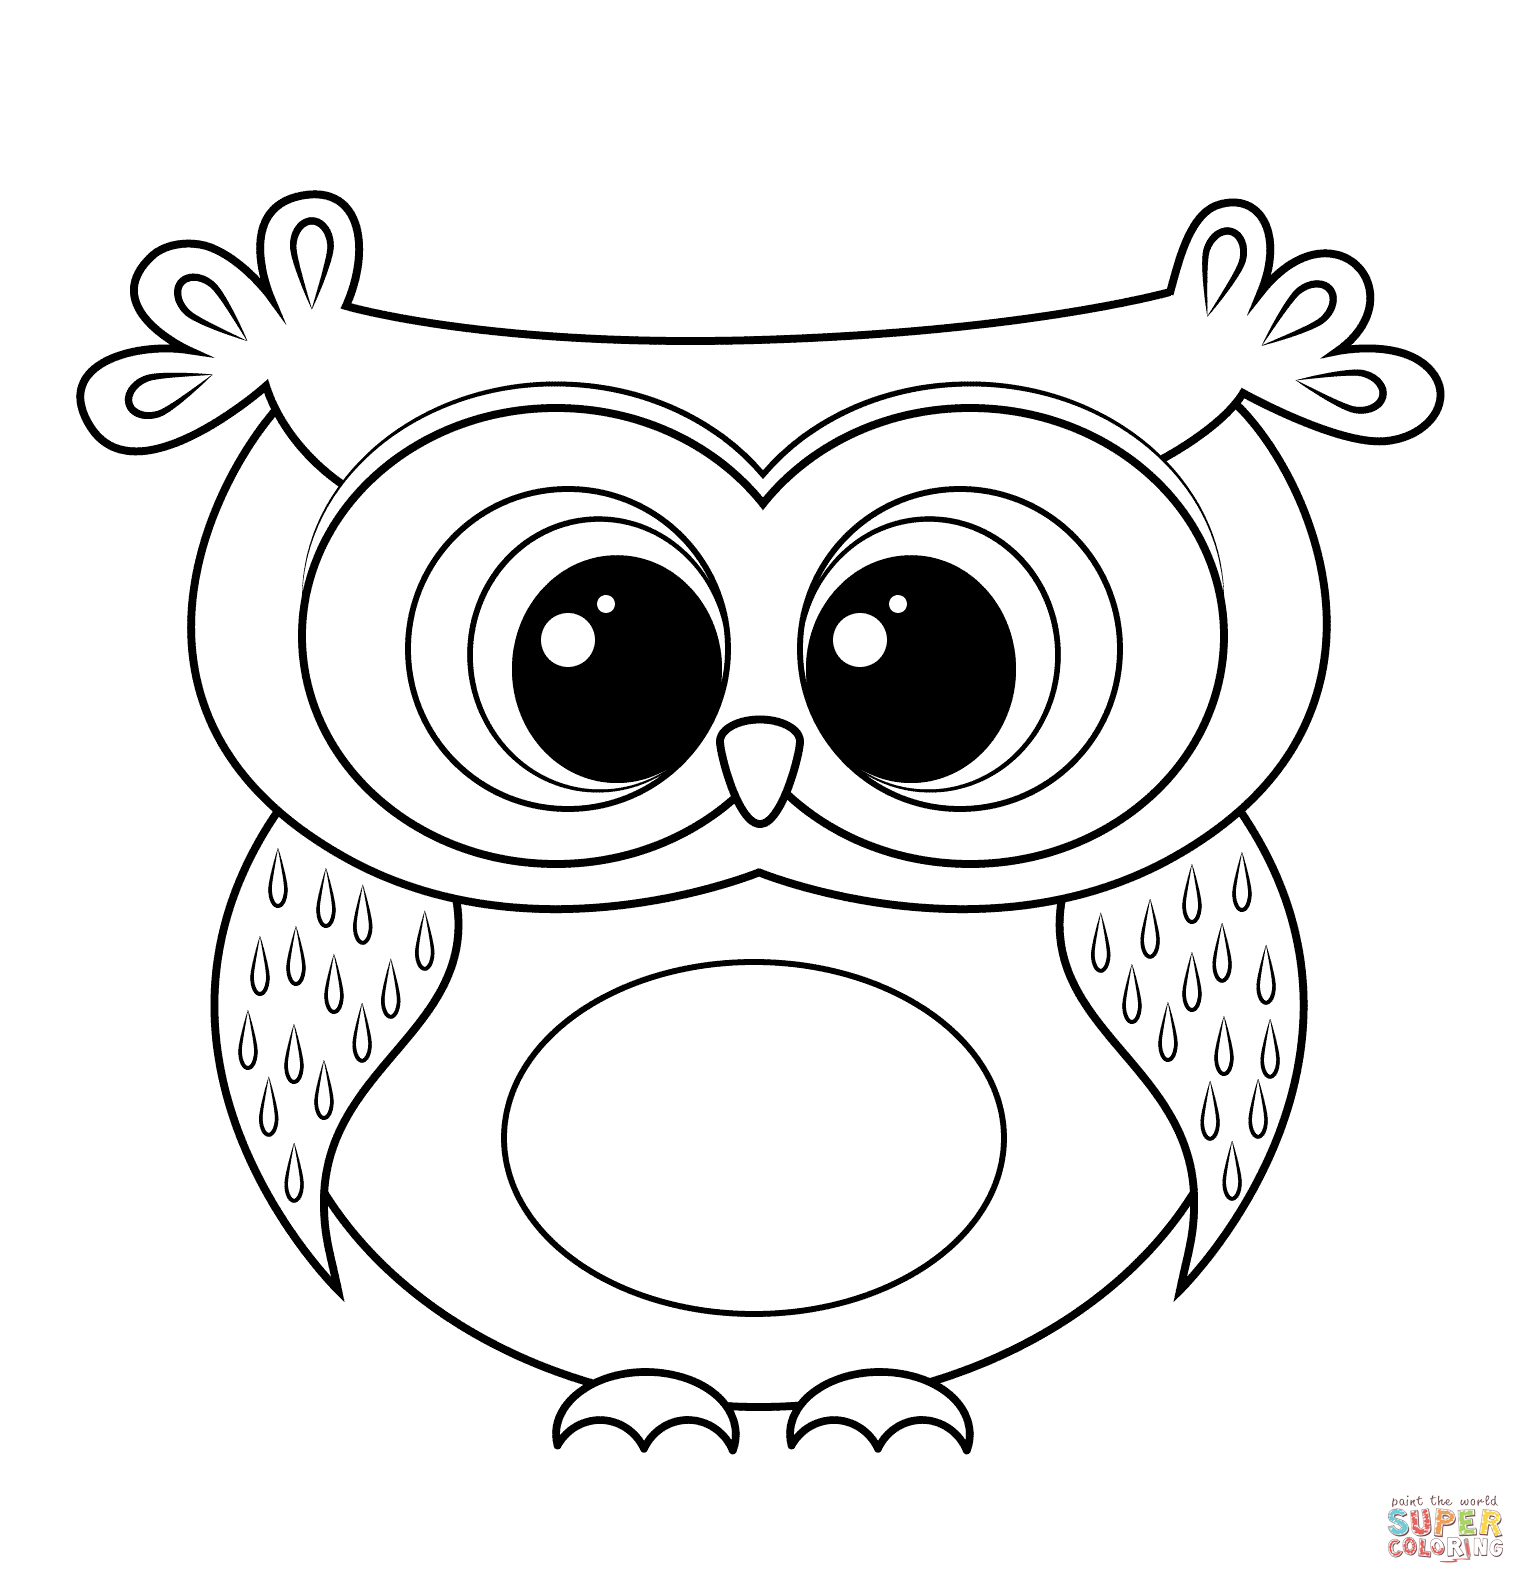 coloring book owl pictures cartoon owl coloring page free printable coloring pages coloring pictures book owl